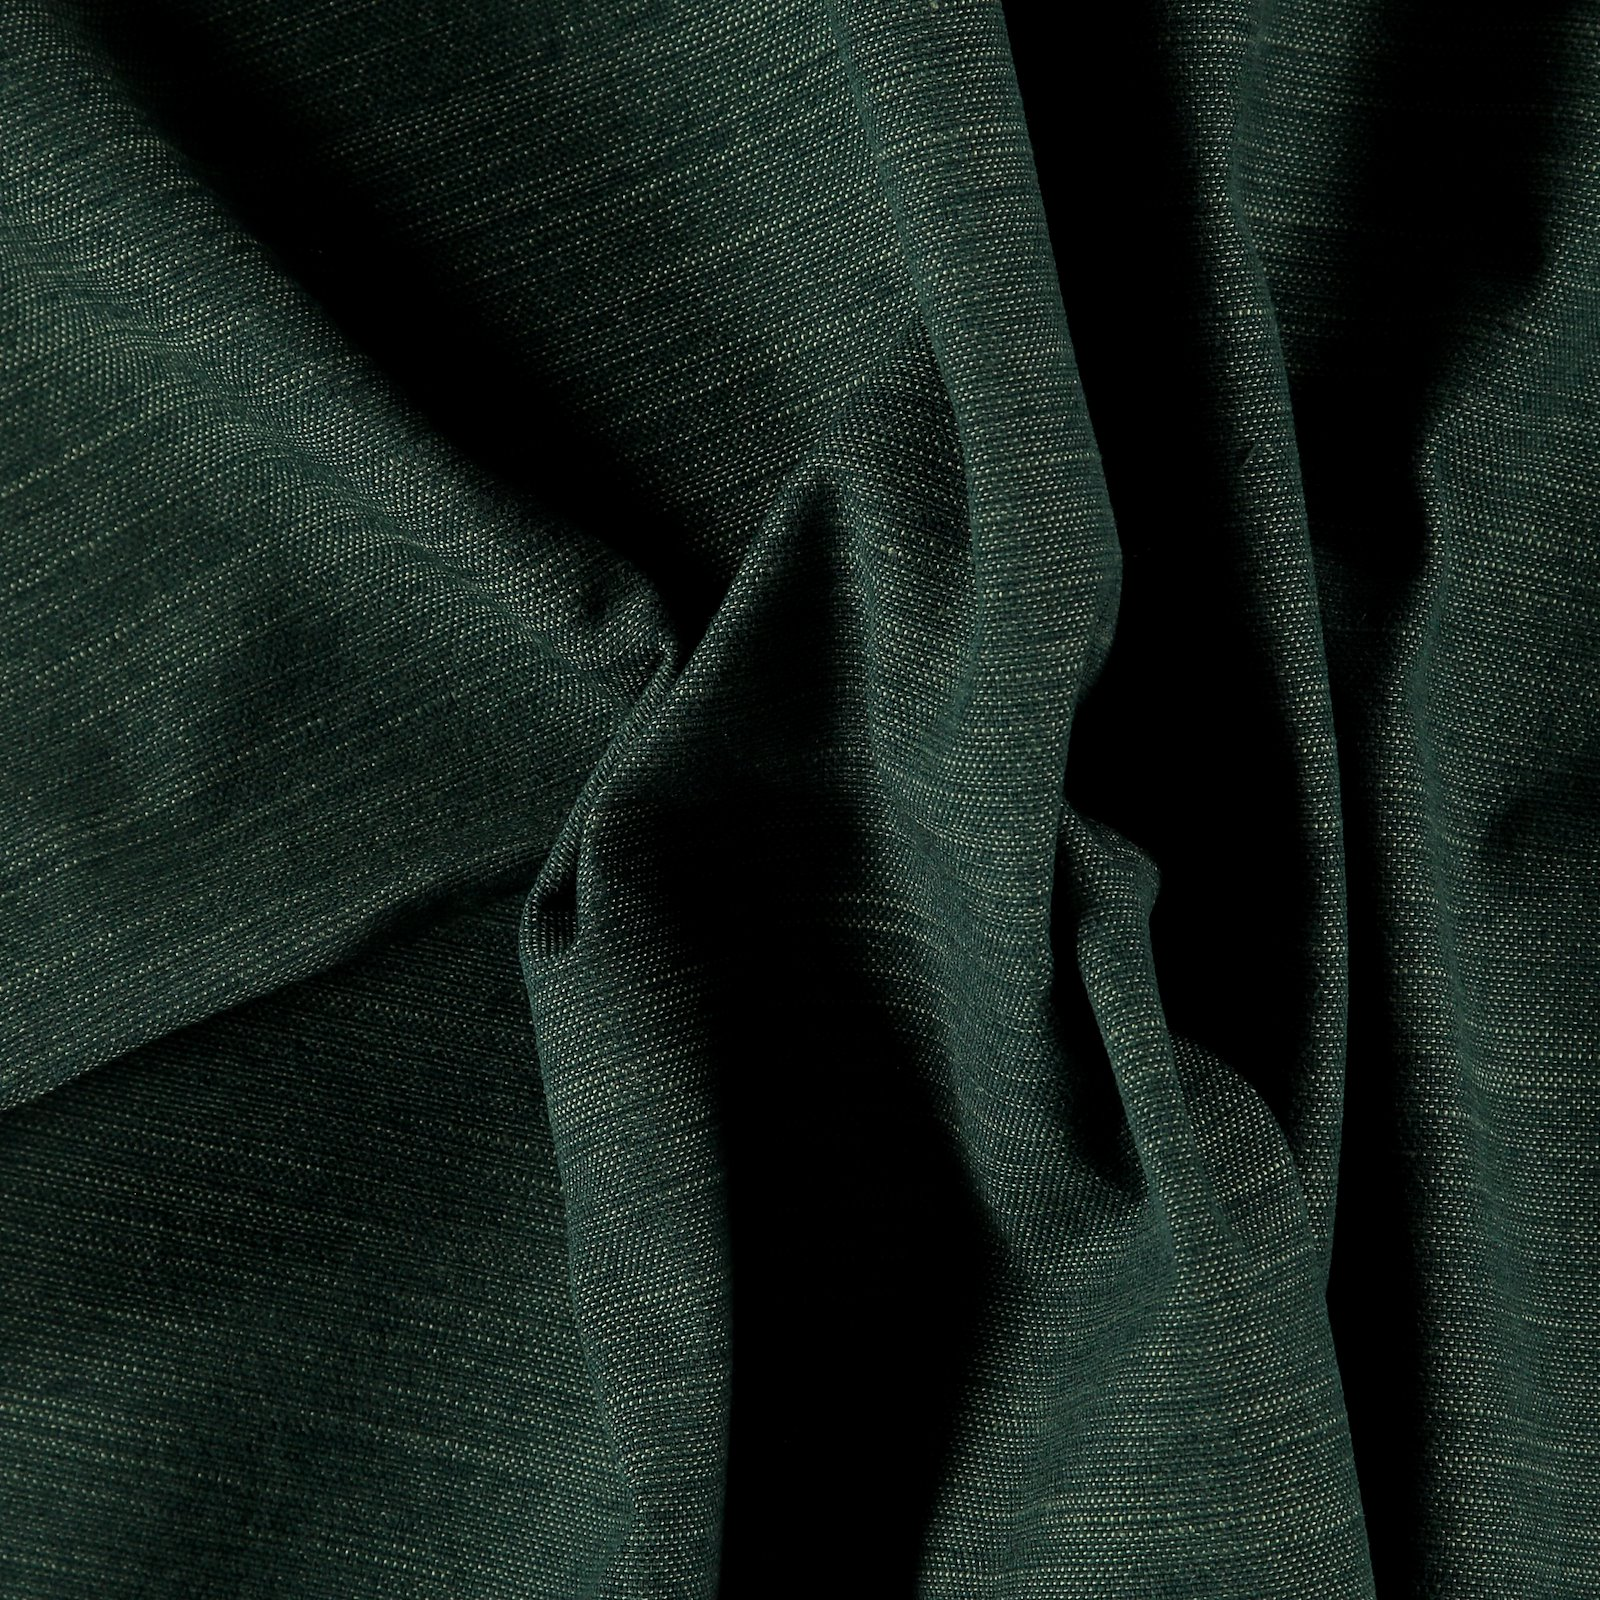 Recycled upholstery fabric green melange